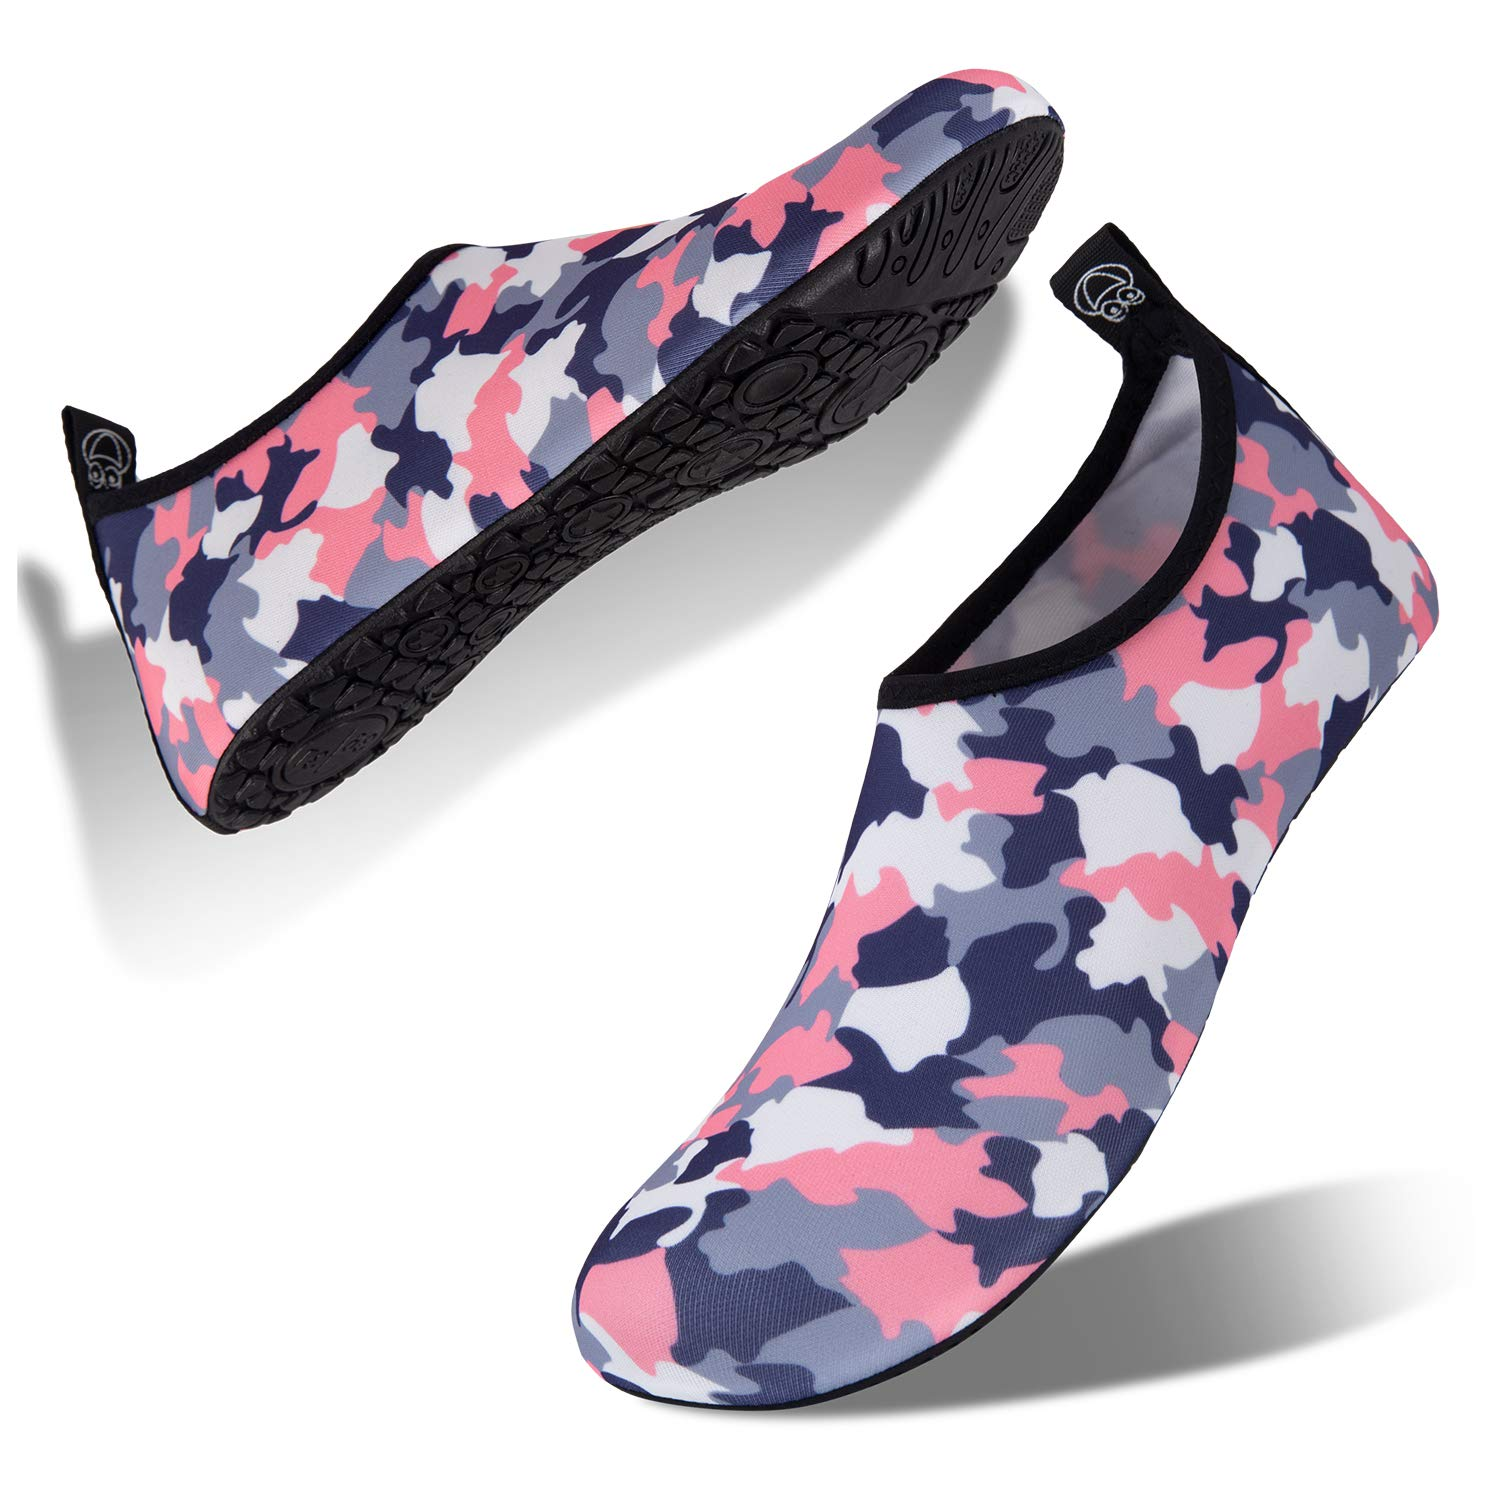 IceUnicorn Water Shoes Quick Dry Swim Aqua Barefoot Socks for Women Men